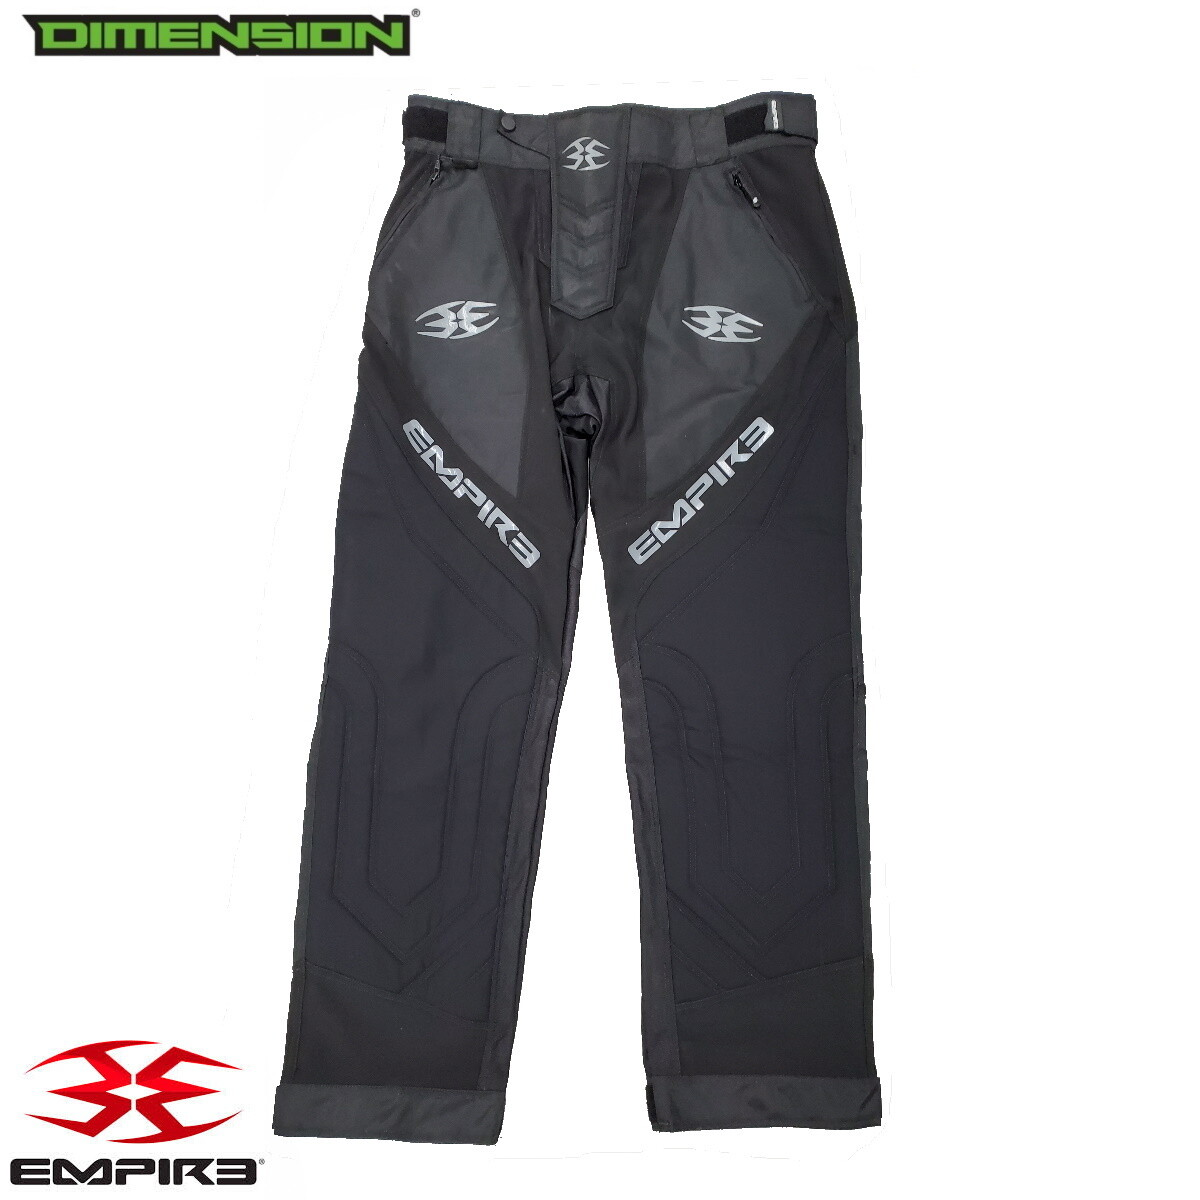 Empire Pants - Black - XL